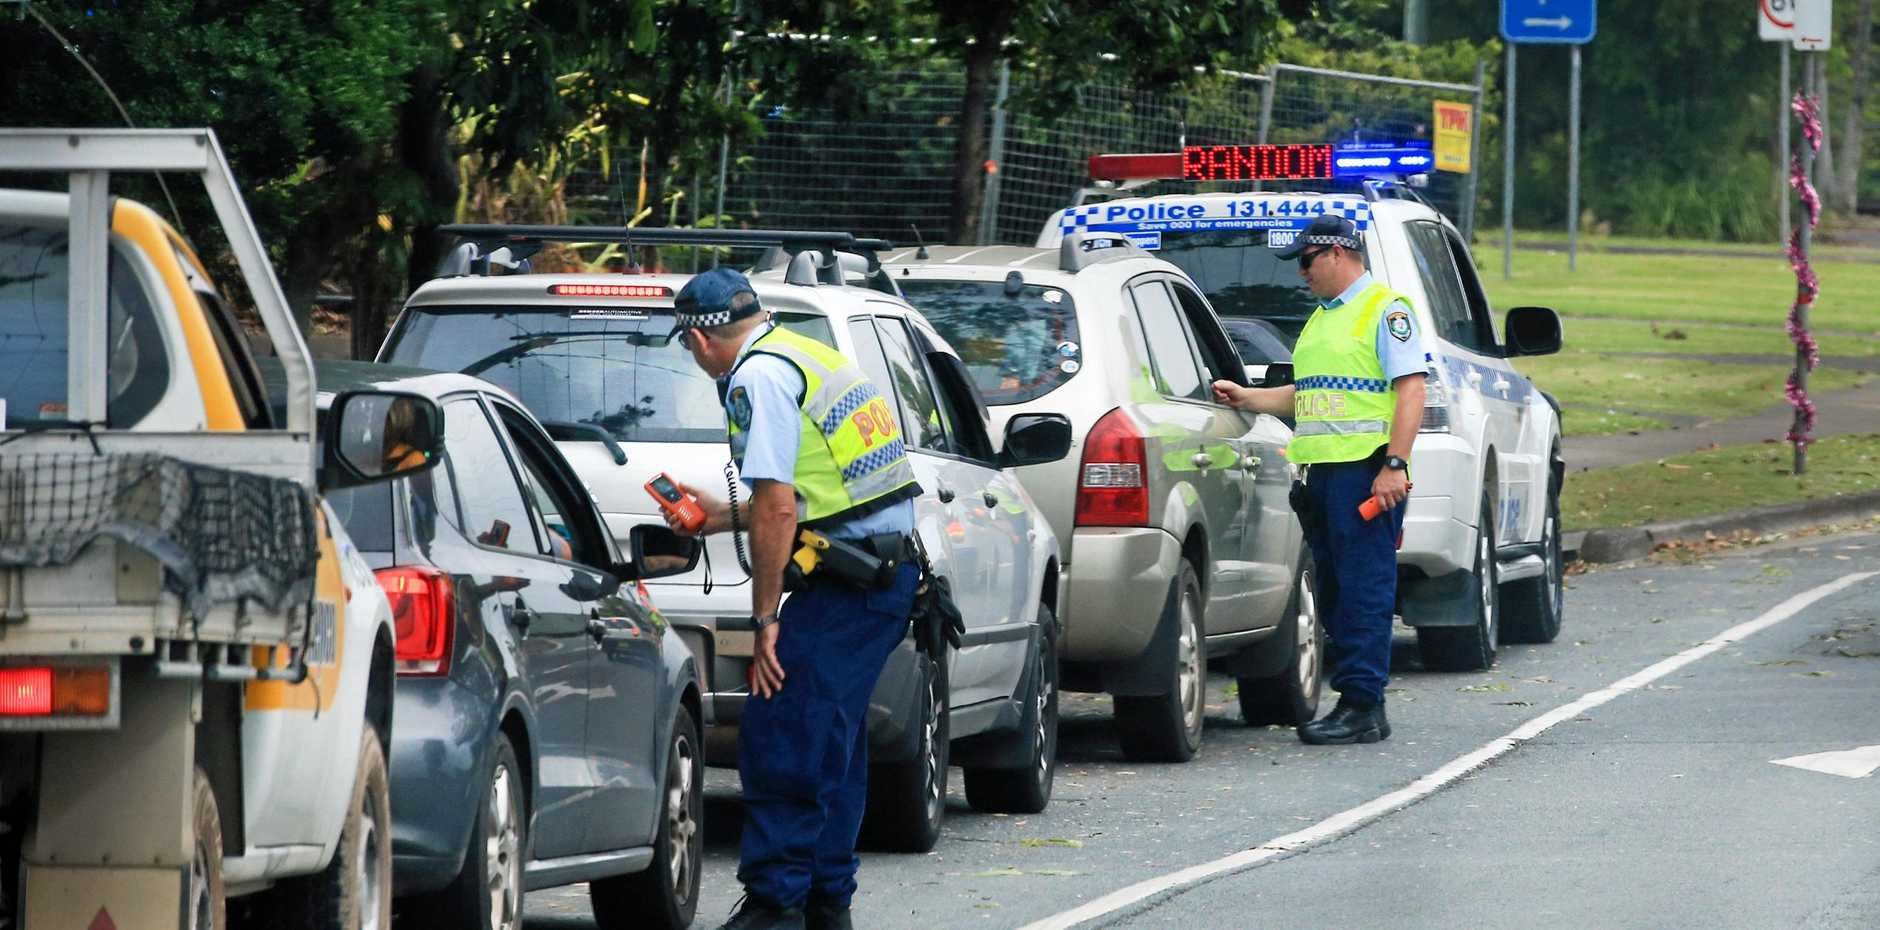 FINED: Speeders were among the people fined during a road blitz at the weekend.